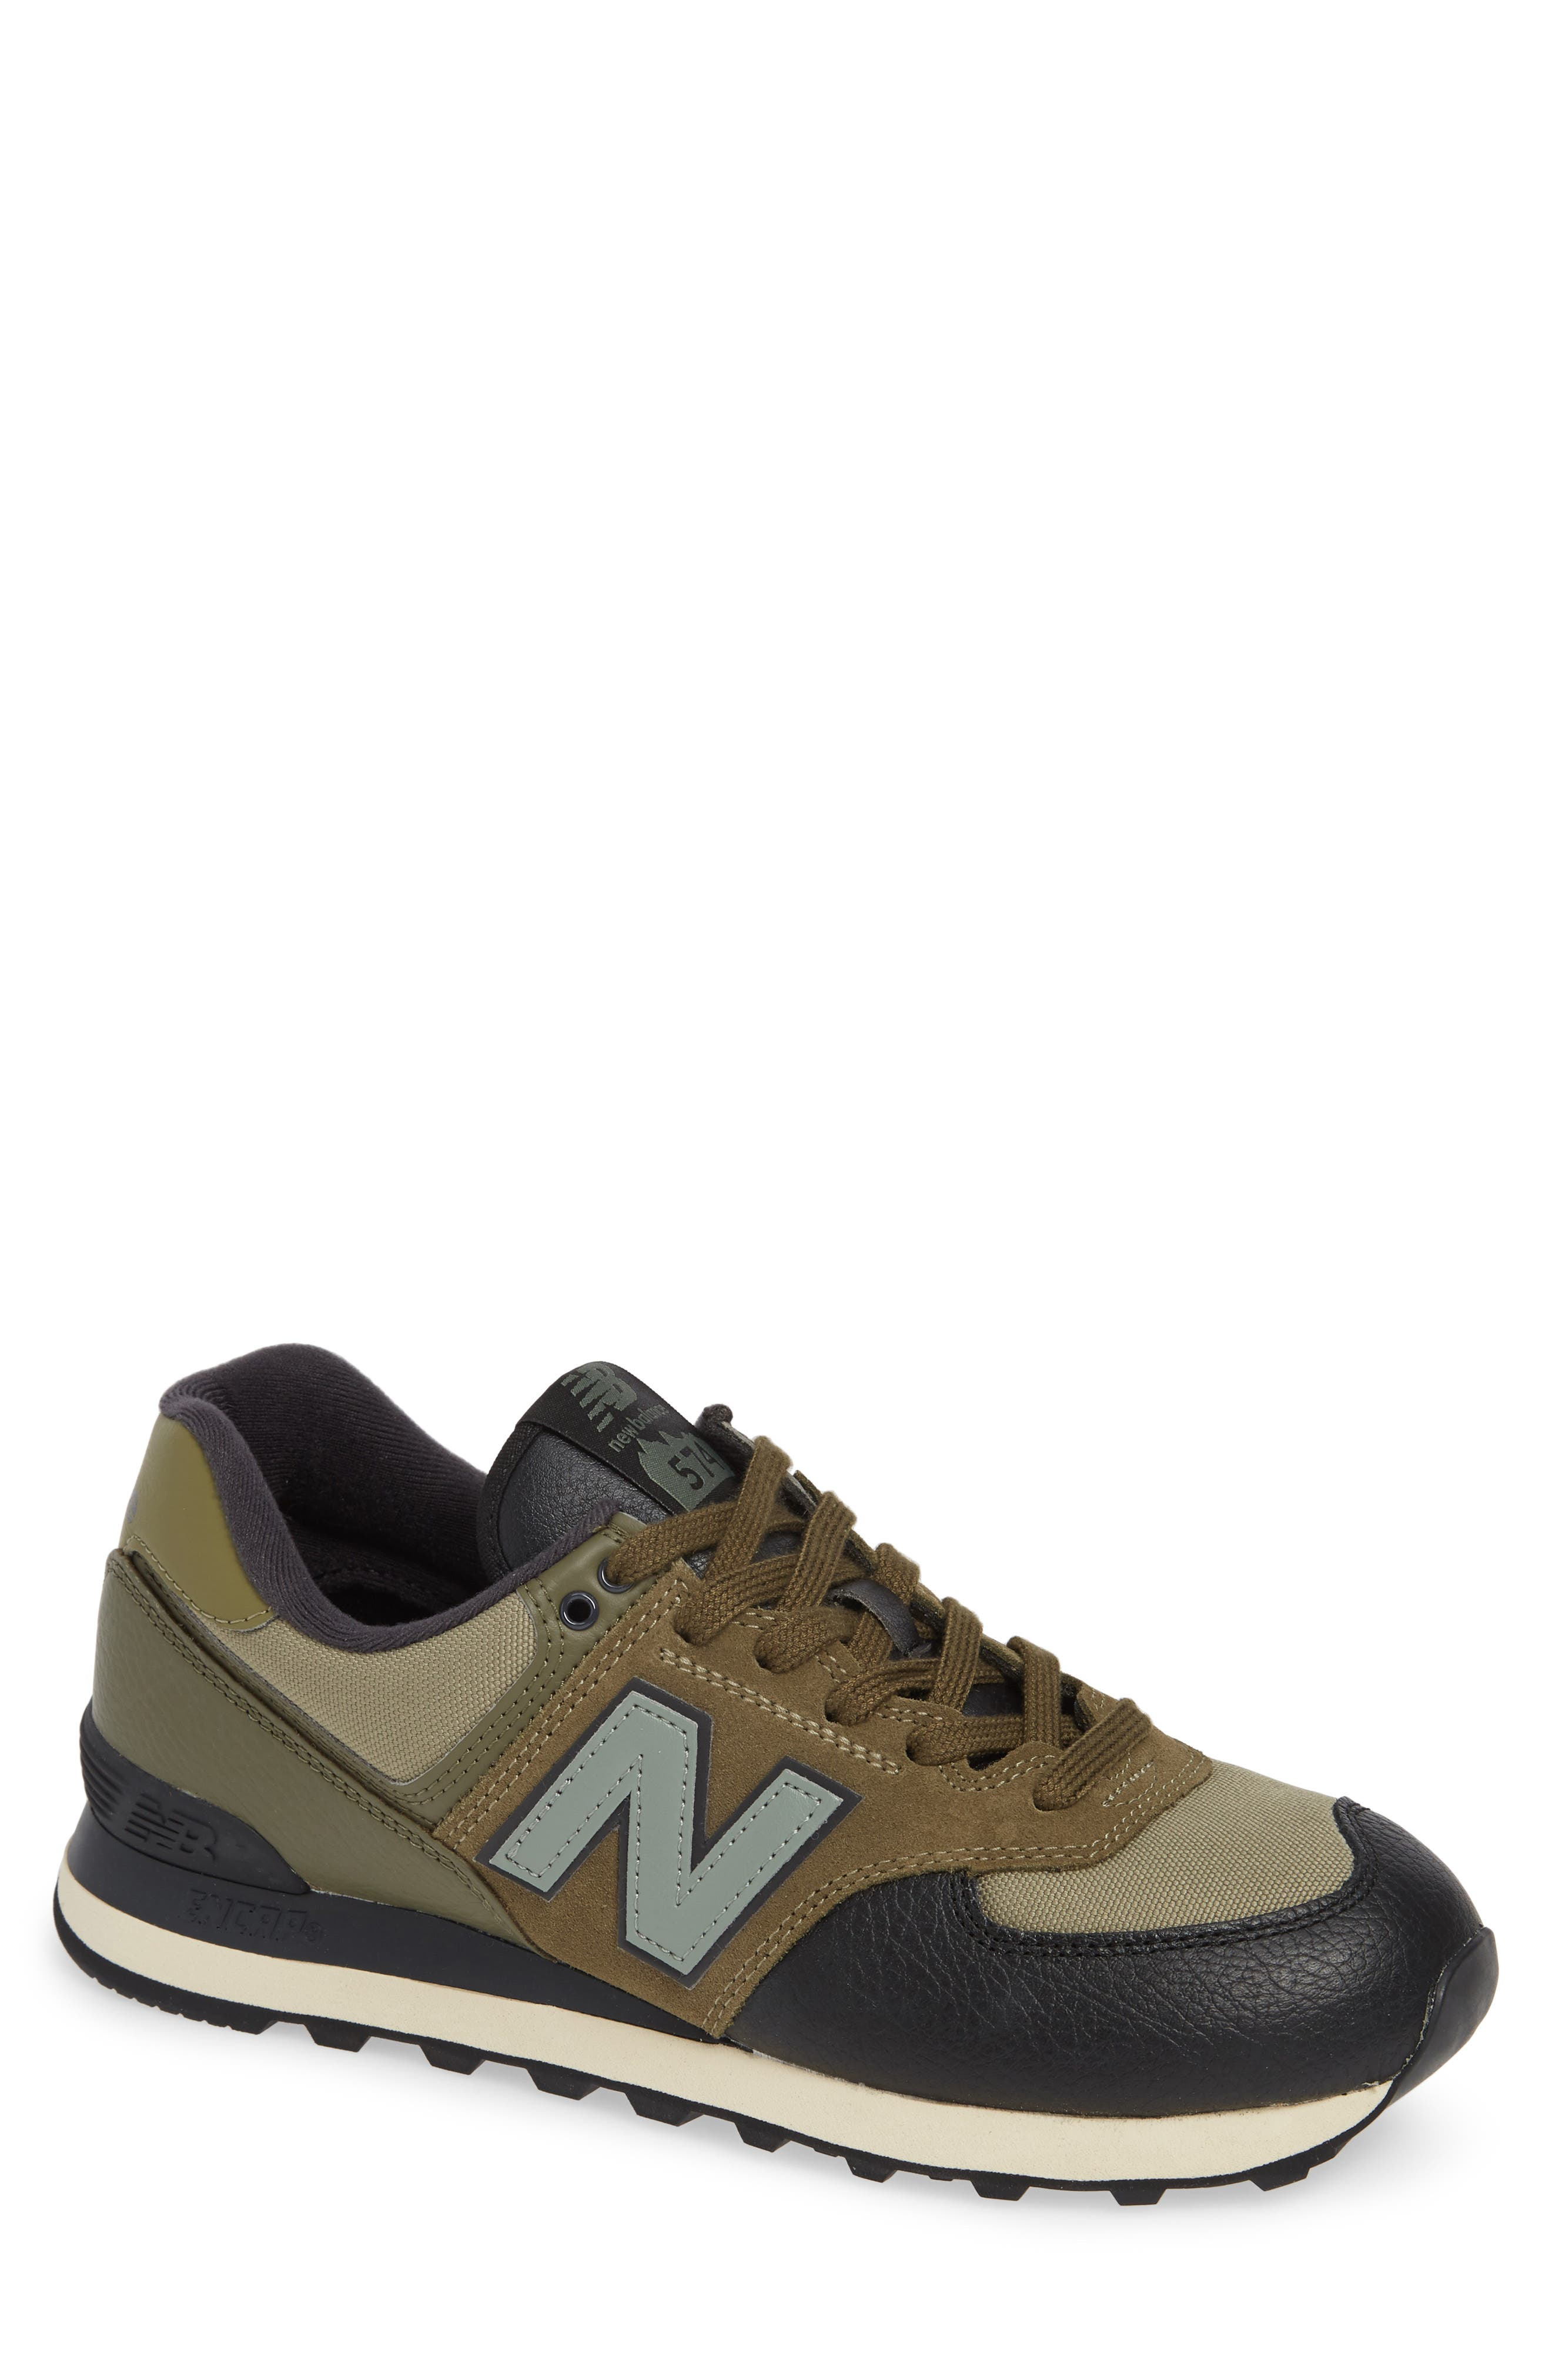 574 Classic Sneaker,                         Main,                         color, COVERT GREEN SUEDE/ TEXTILE